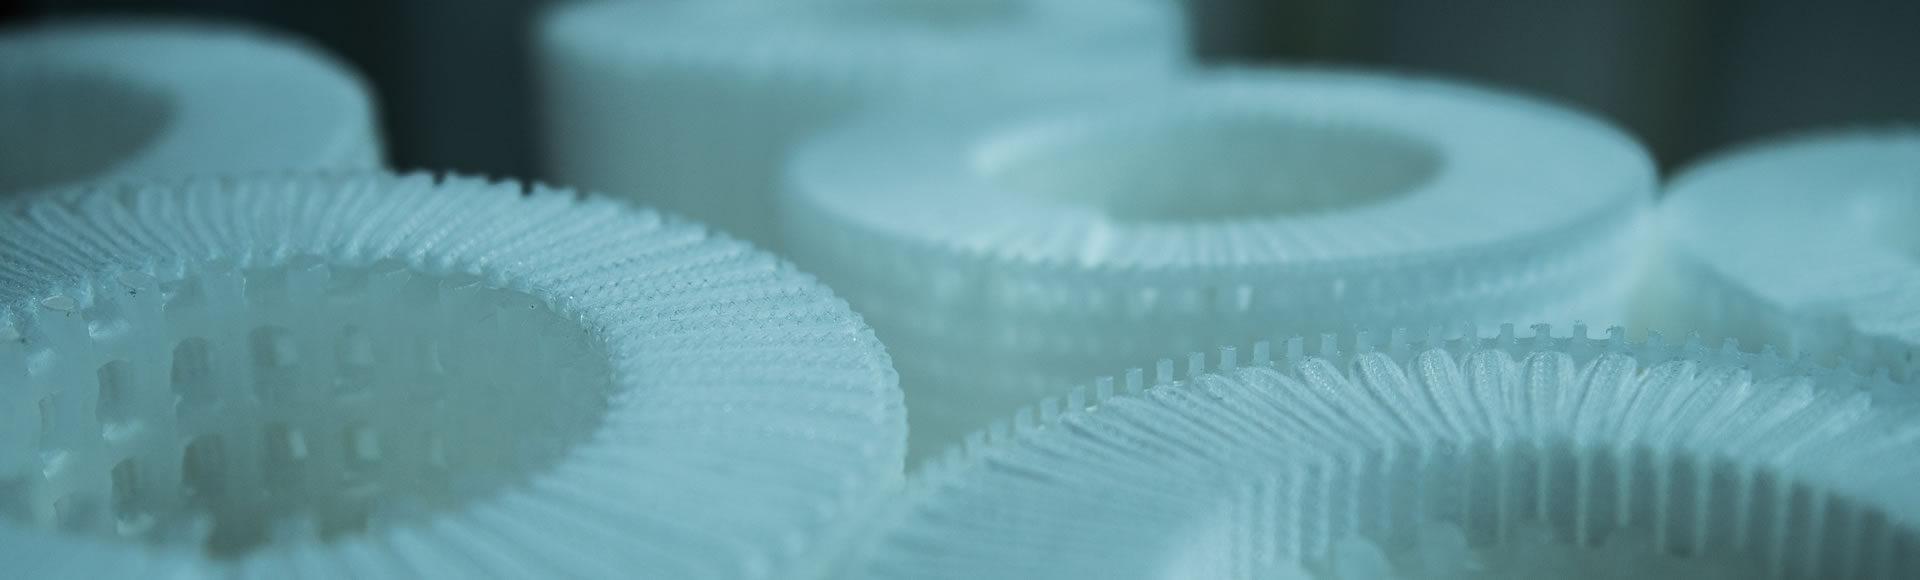 prefiltration-pleated-filters